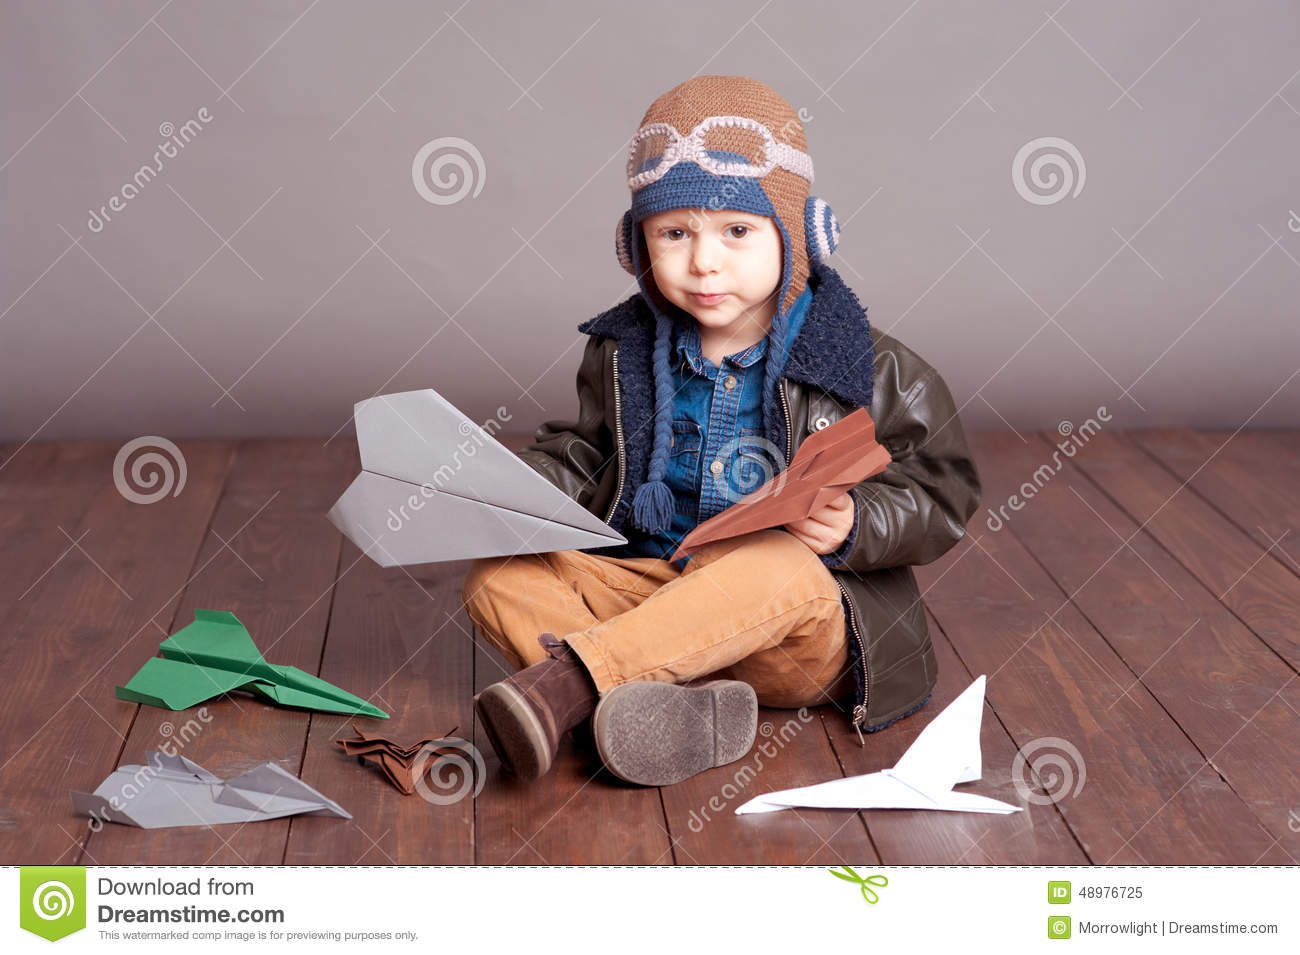 d7410ecf77d Cute baby boy wearing stylish leather jacket and aviator cap over gray.  Playing with paper origami planes in room. Sitting on wooden floor.